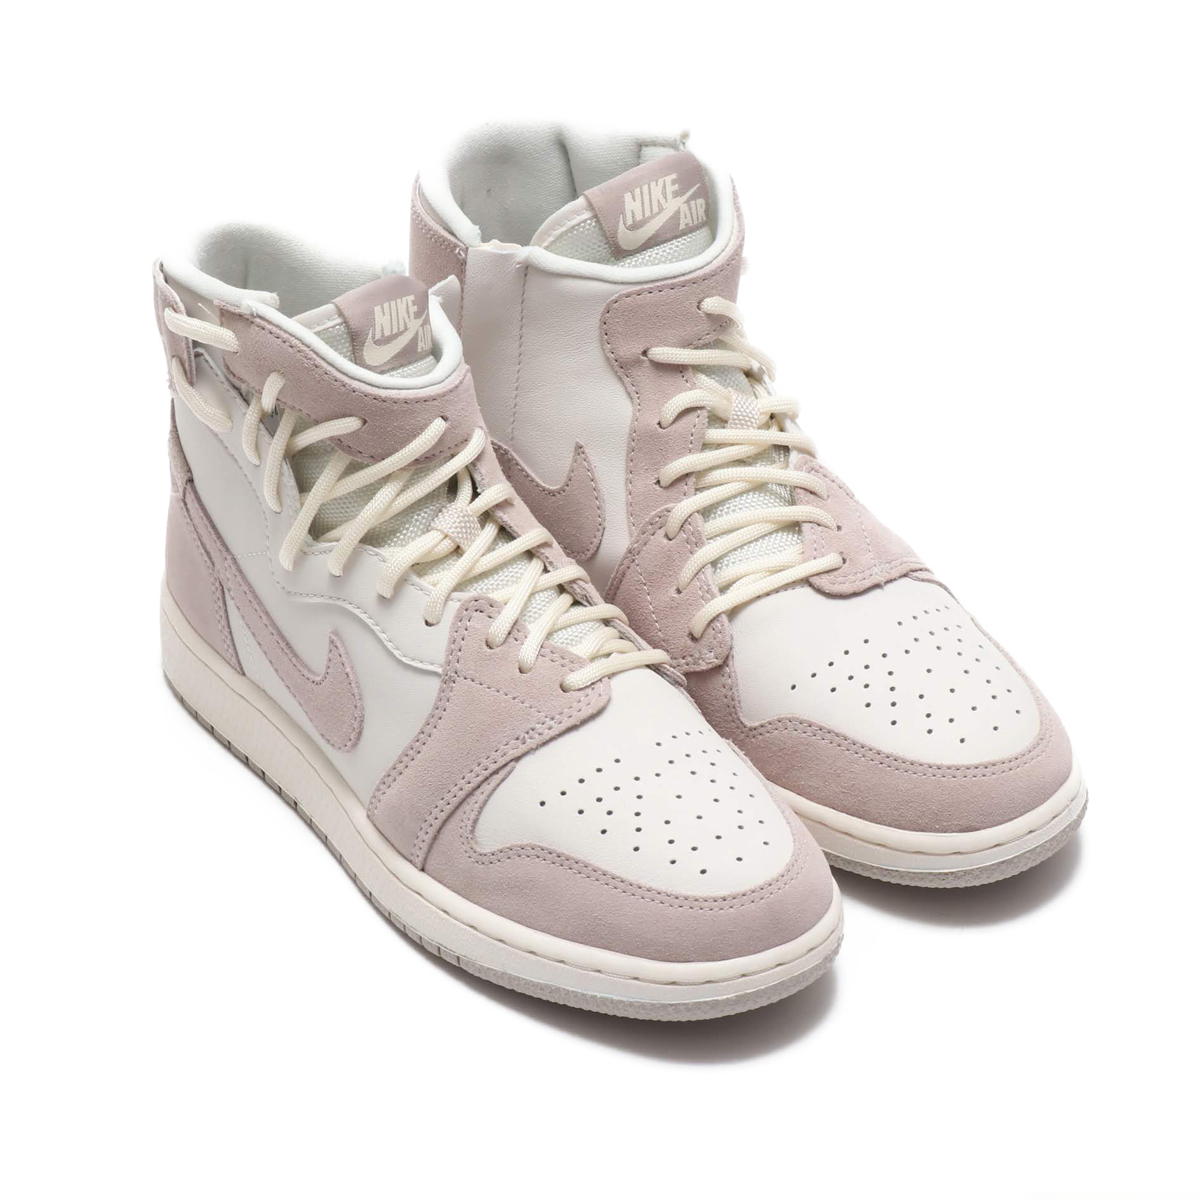 half off 13697 6d06d NIKE WMNS AIR JORDAN 1 REBEL XX (Nike women Air Jordan 1 REBEL XX) MOON  PARTICLE MOON PARTICLE-PHANTOM 18FA-S